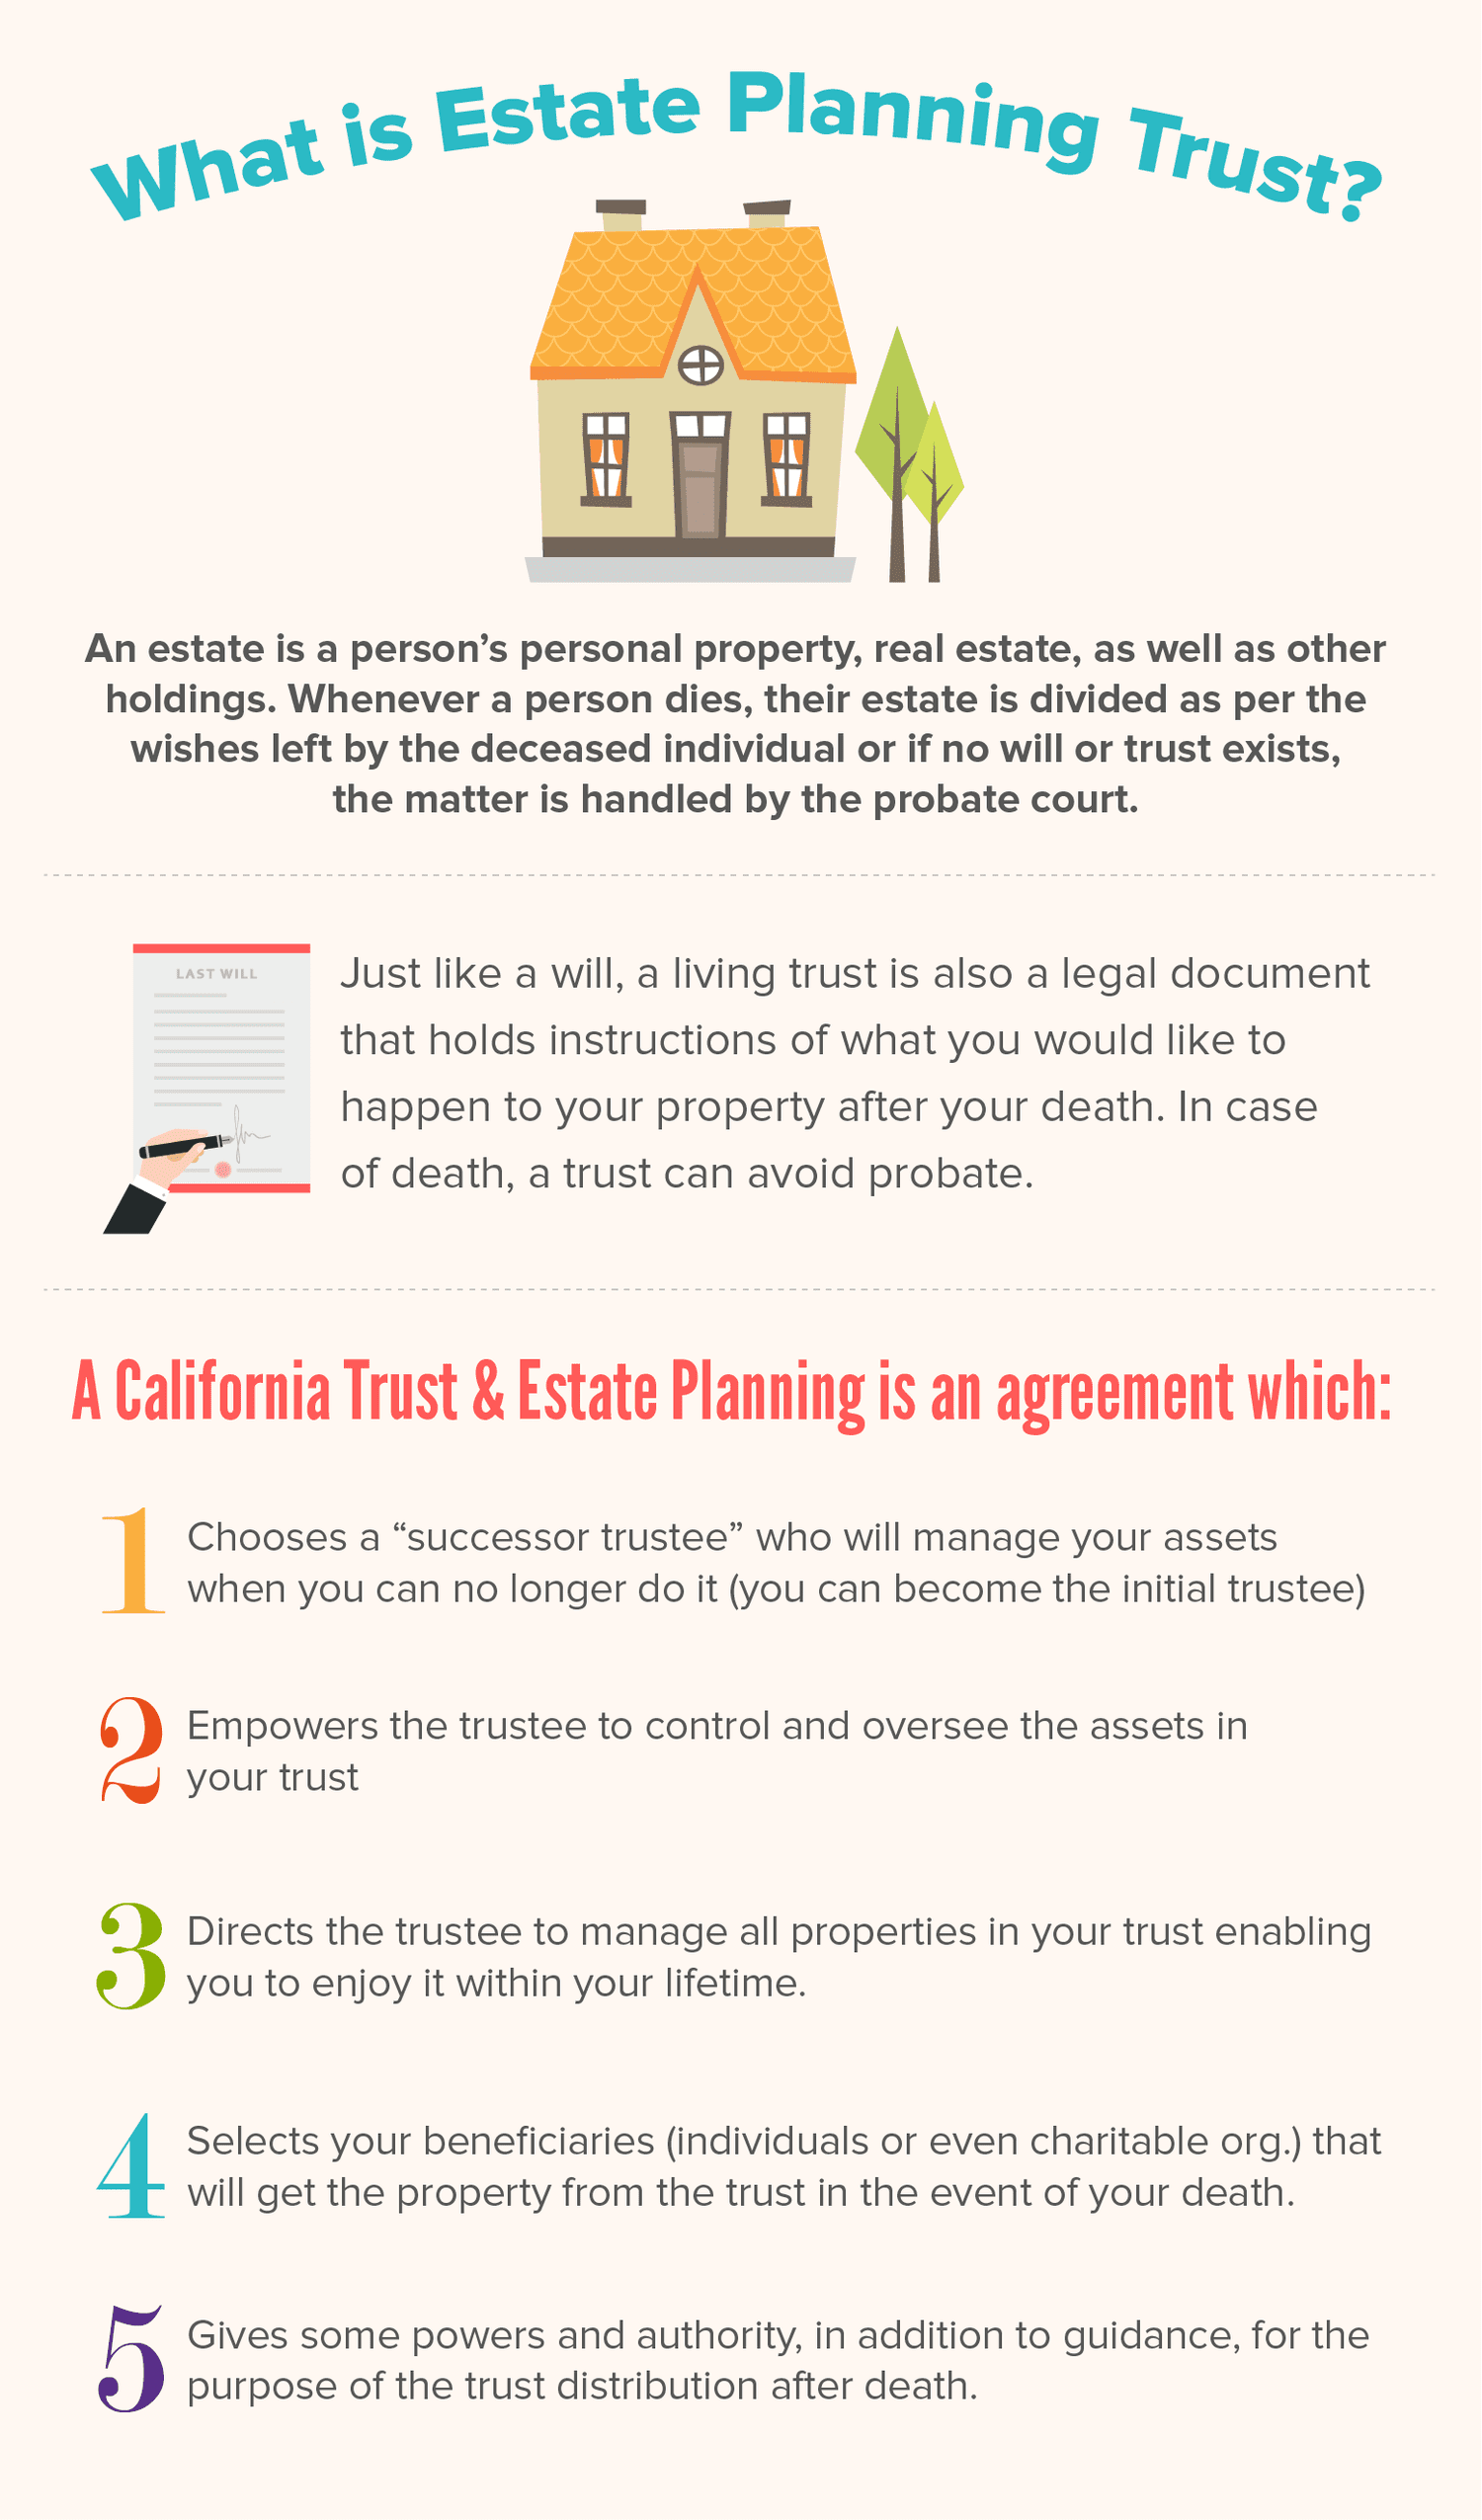 infographic for what is estate planning trust